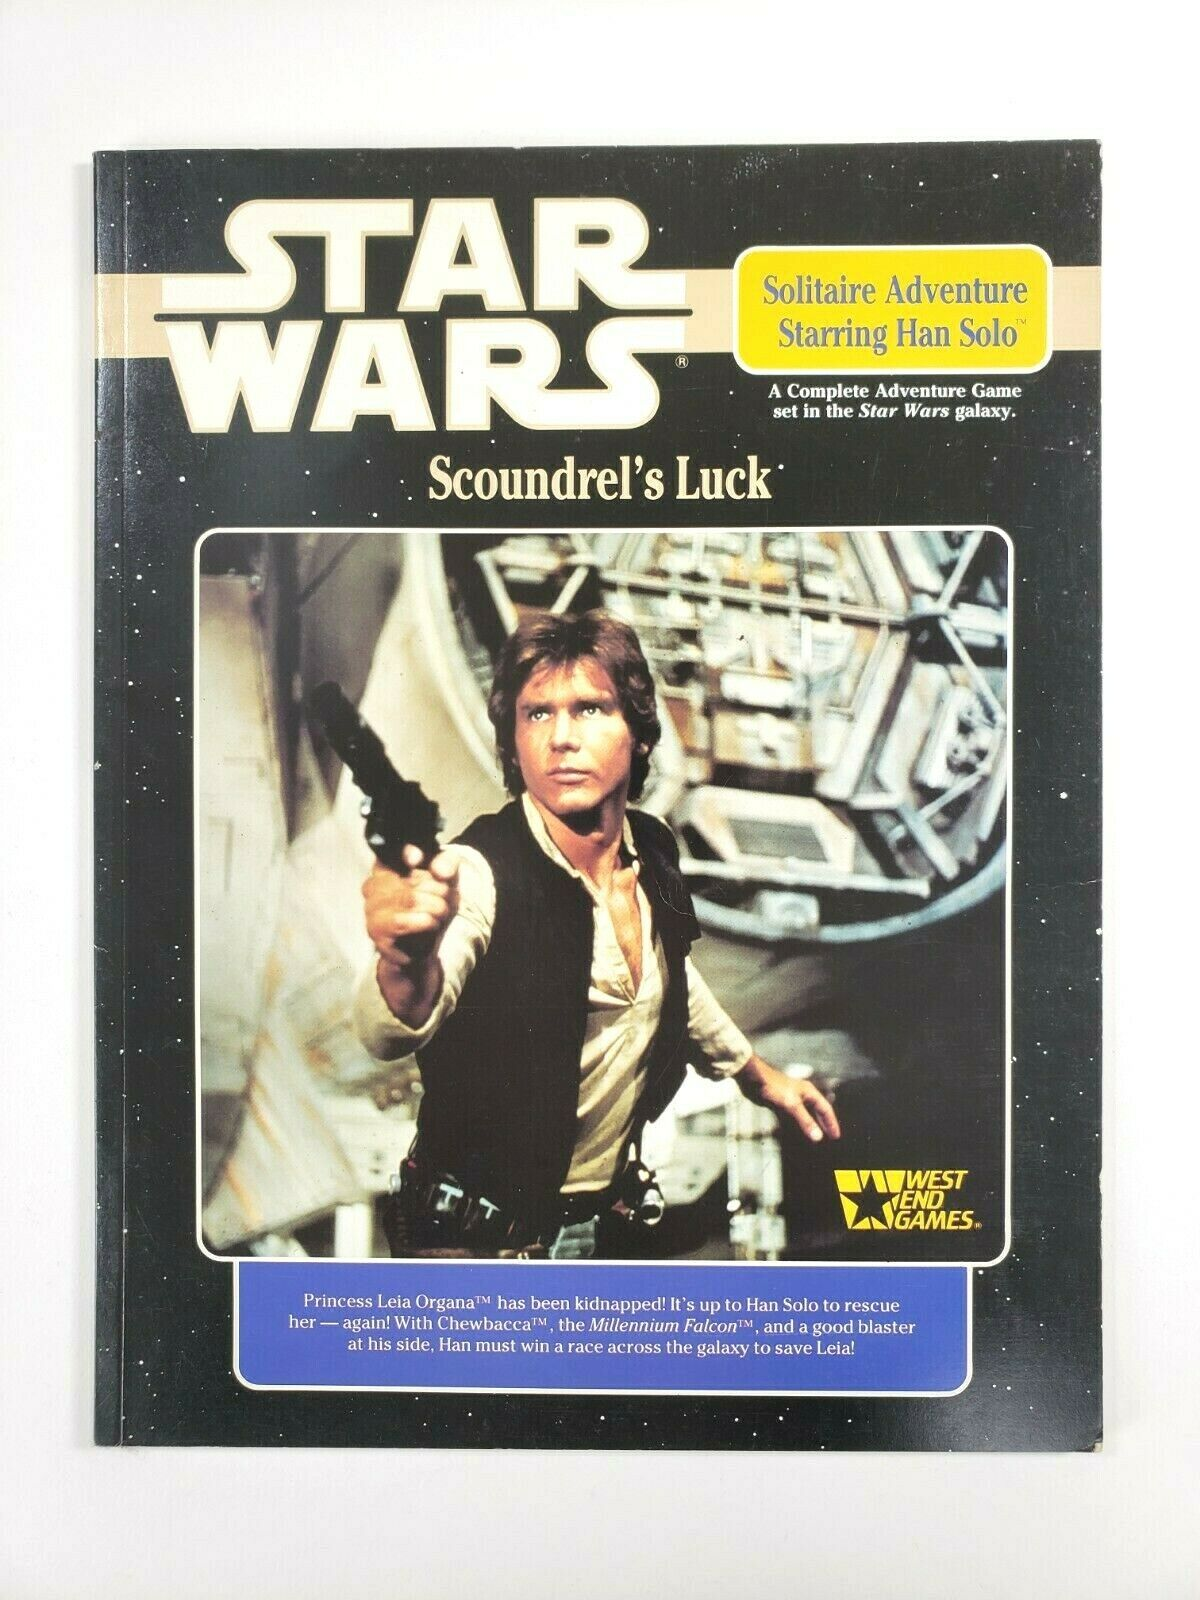 Scoundrel's Luck: Star Wars Solitary Adventure Game